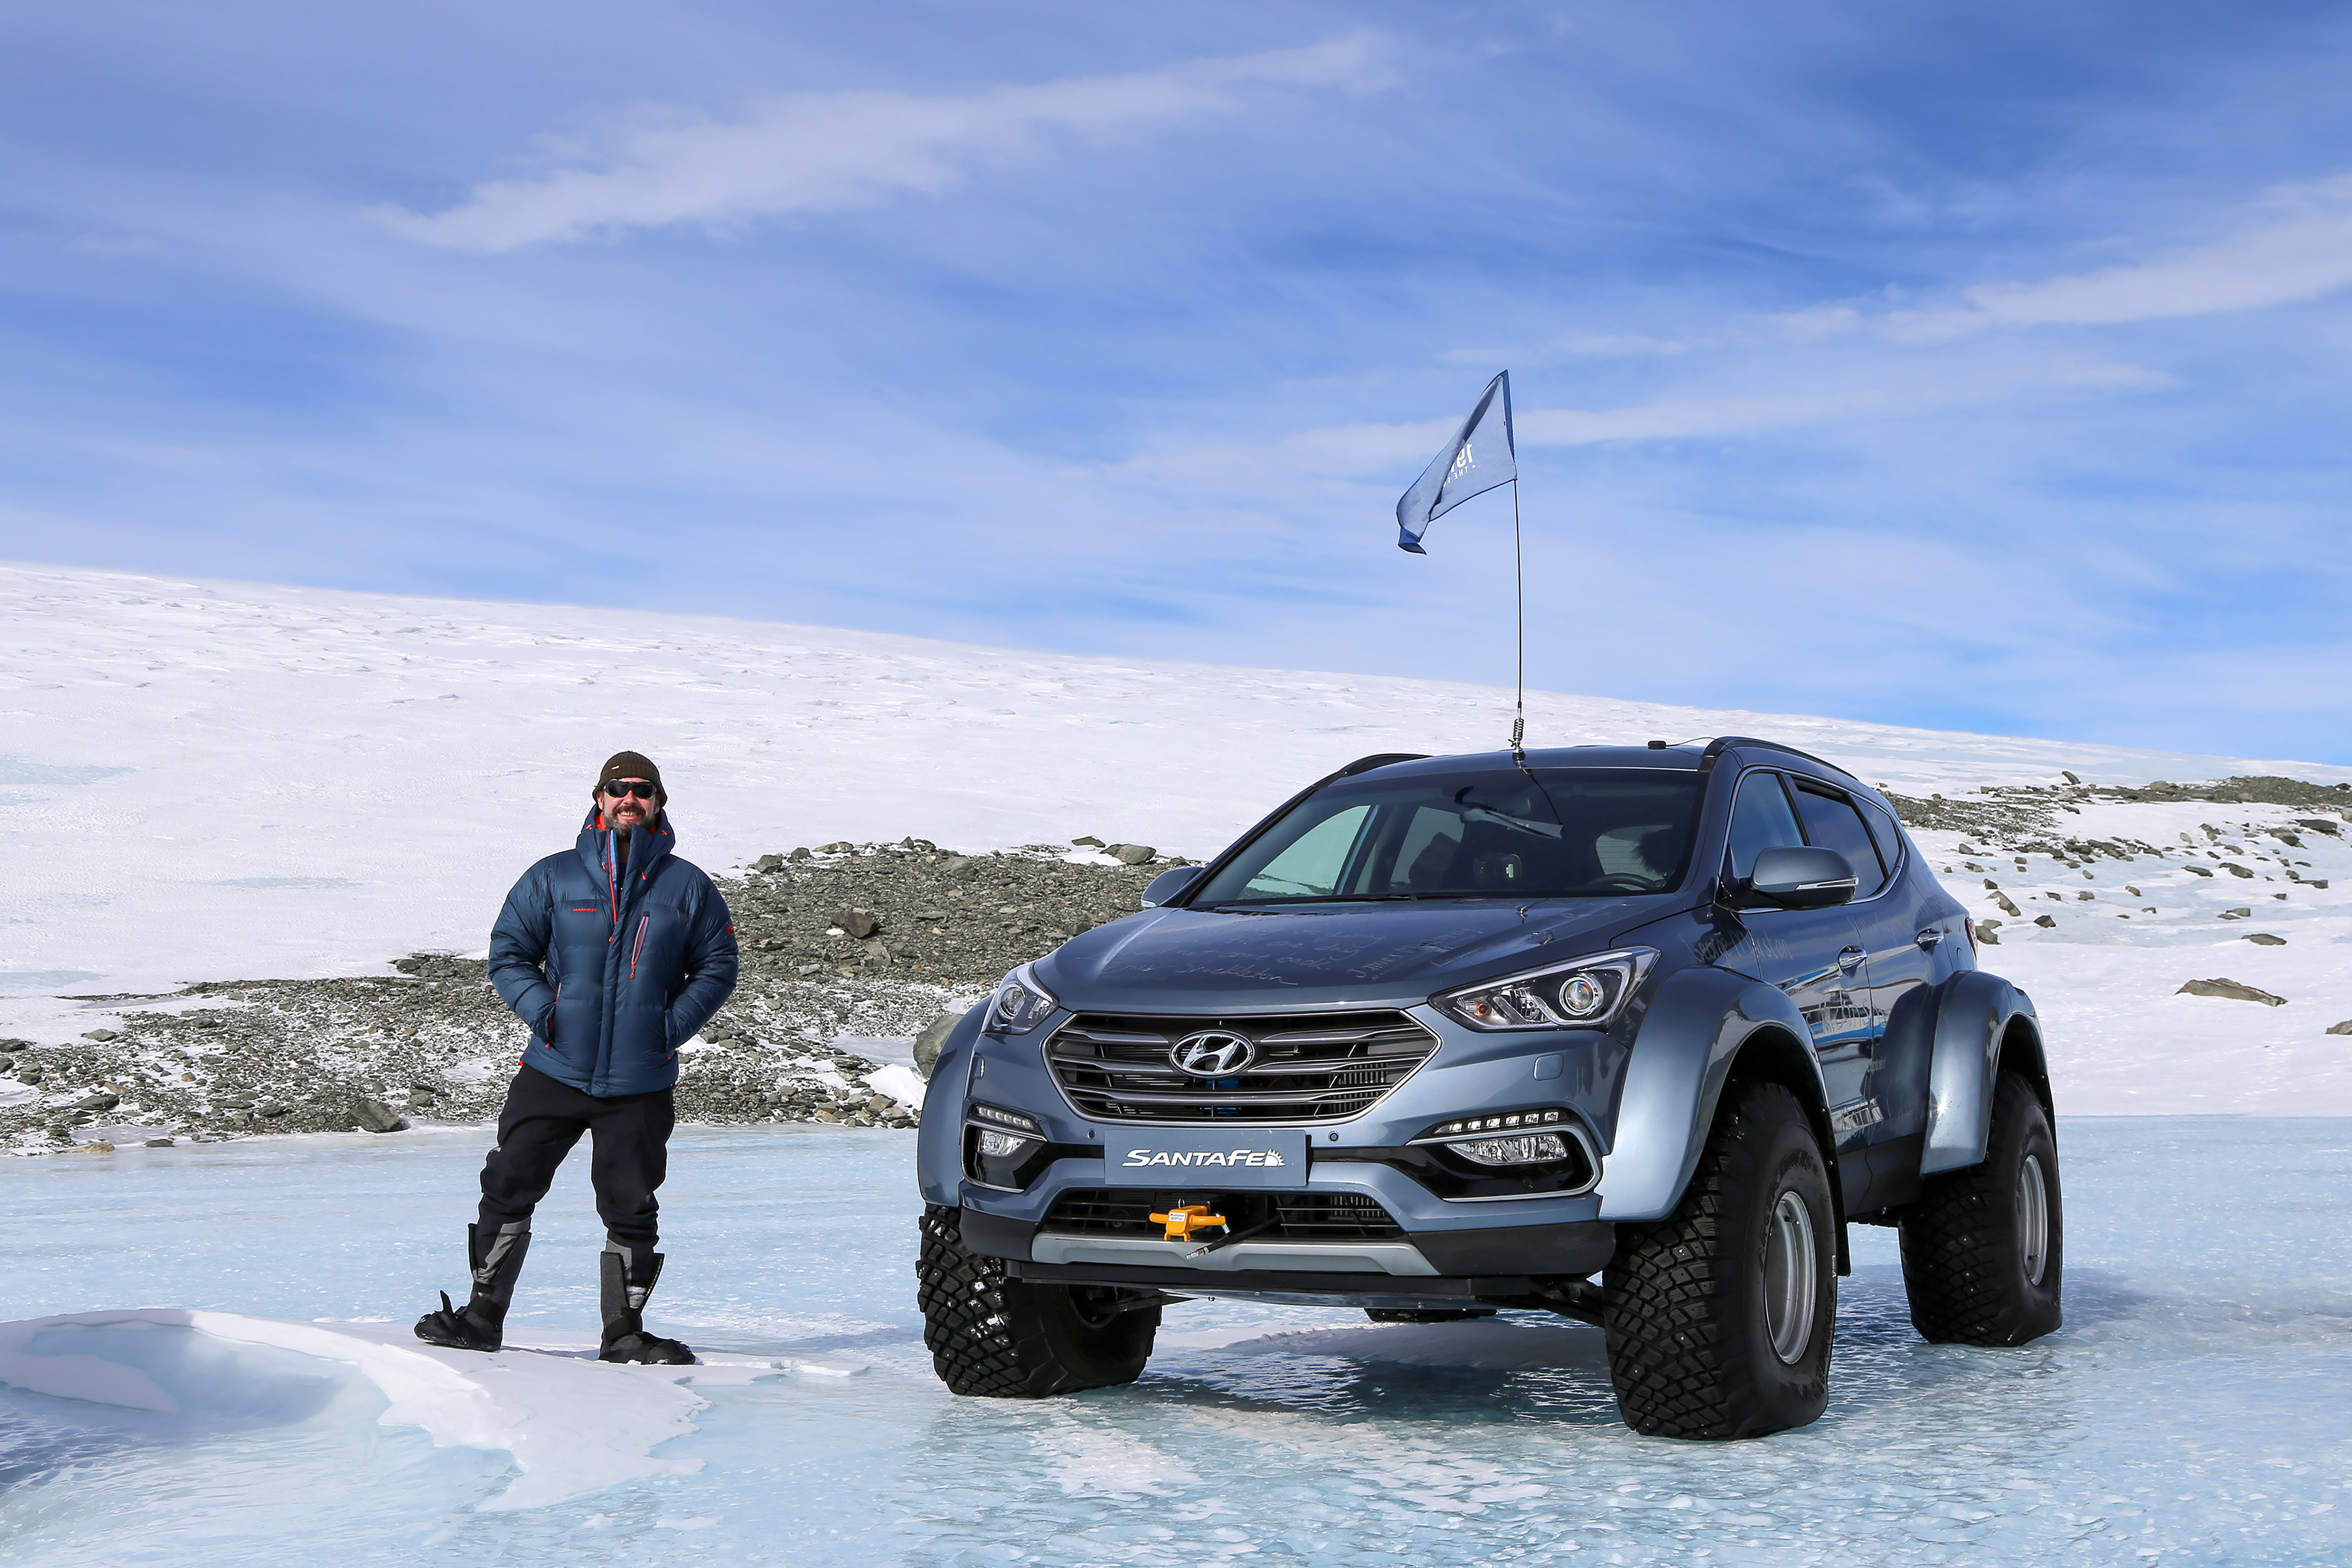 Explorer Ernest Shackleton's great grandson drives car across Antarctic